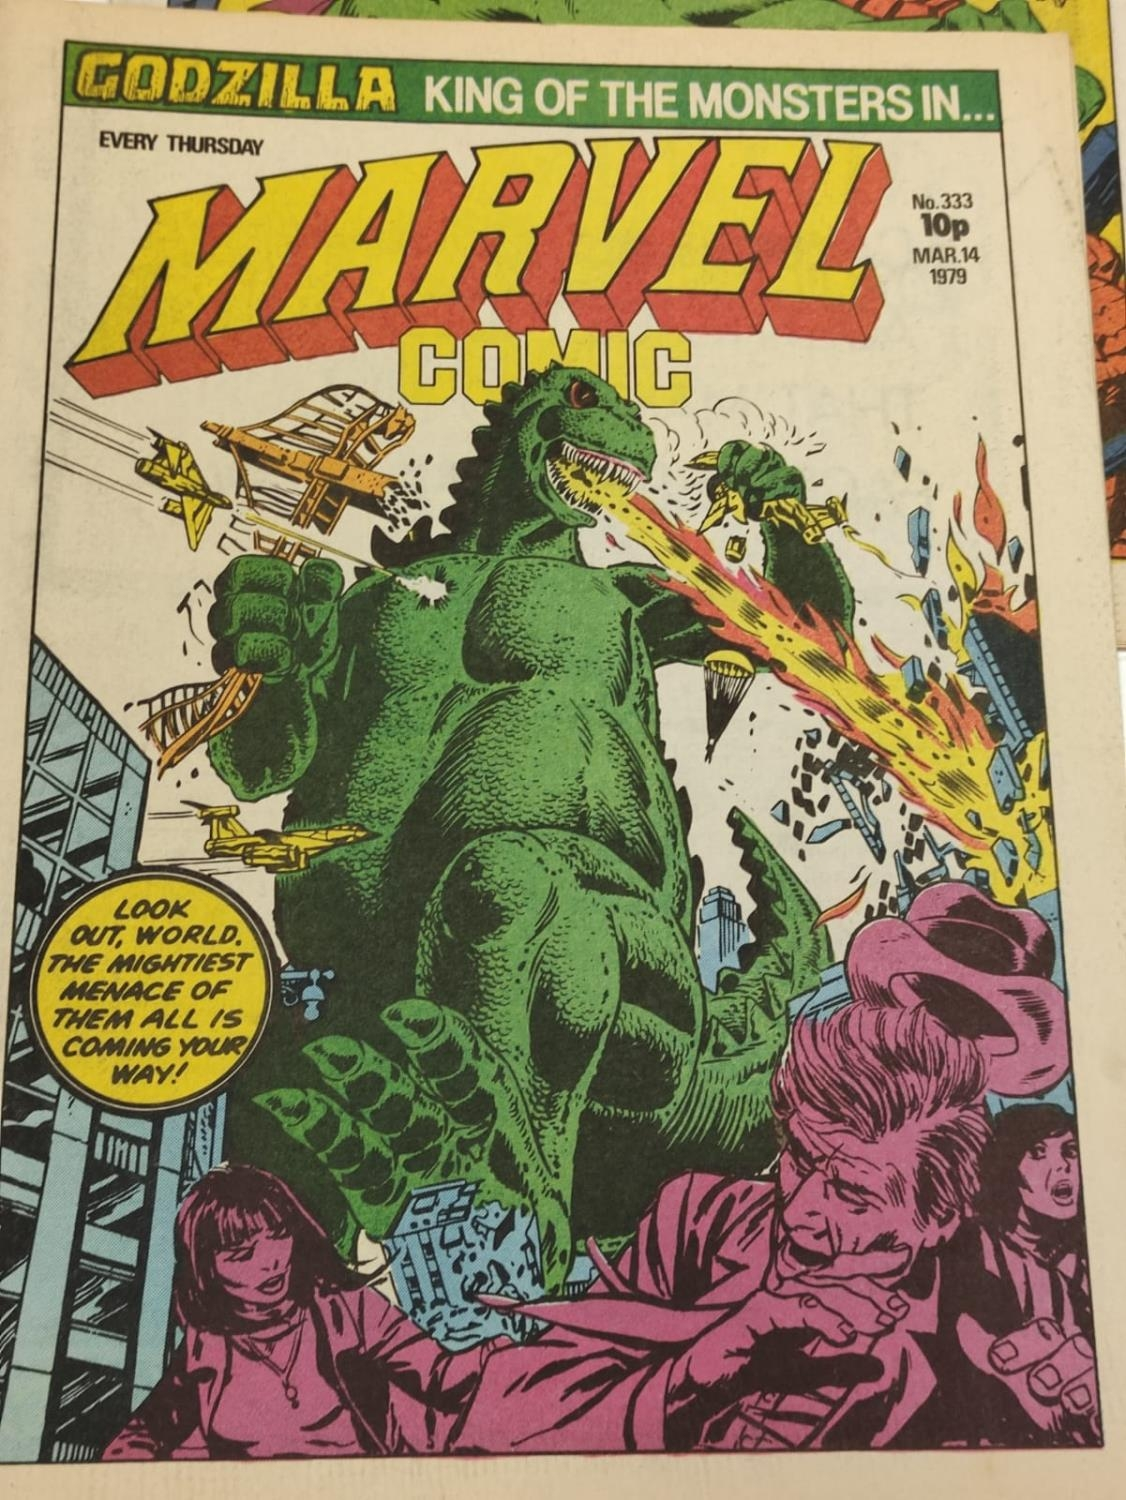 20 editions of mixed Vintage Marvel Comics. - Image 26 of 56